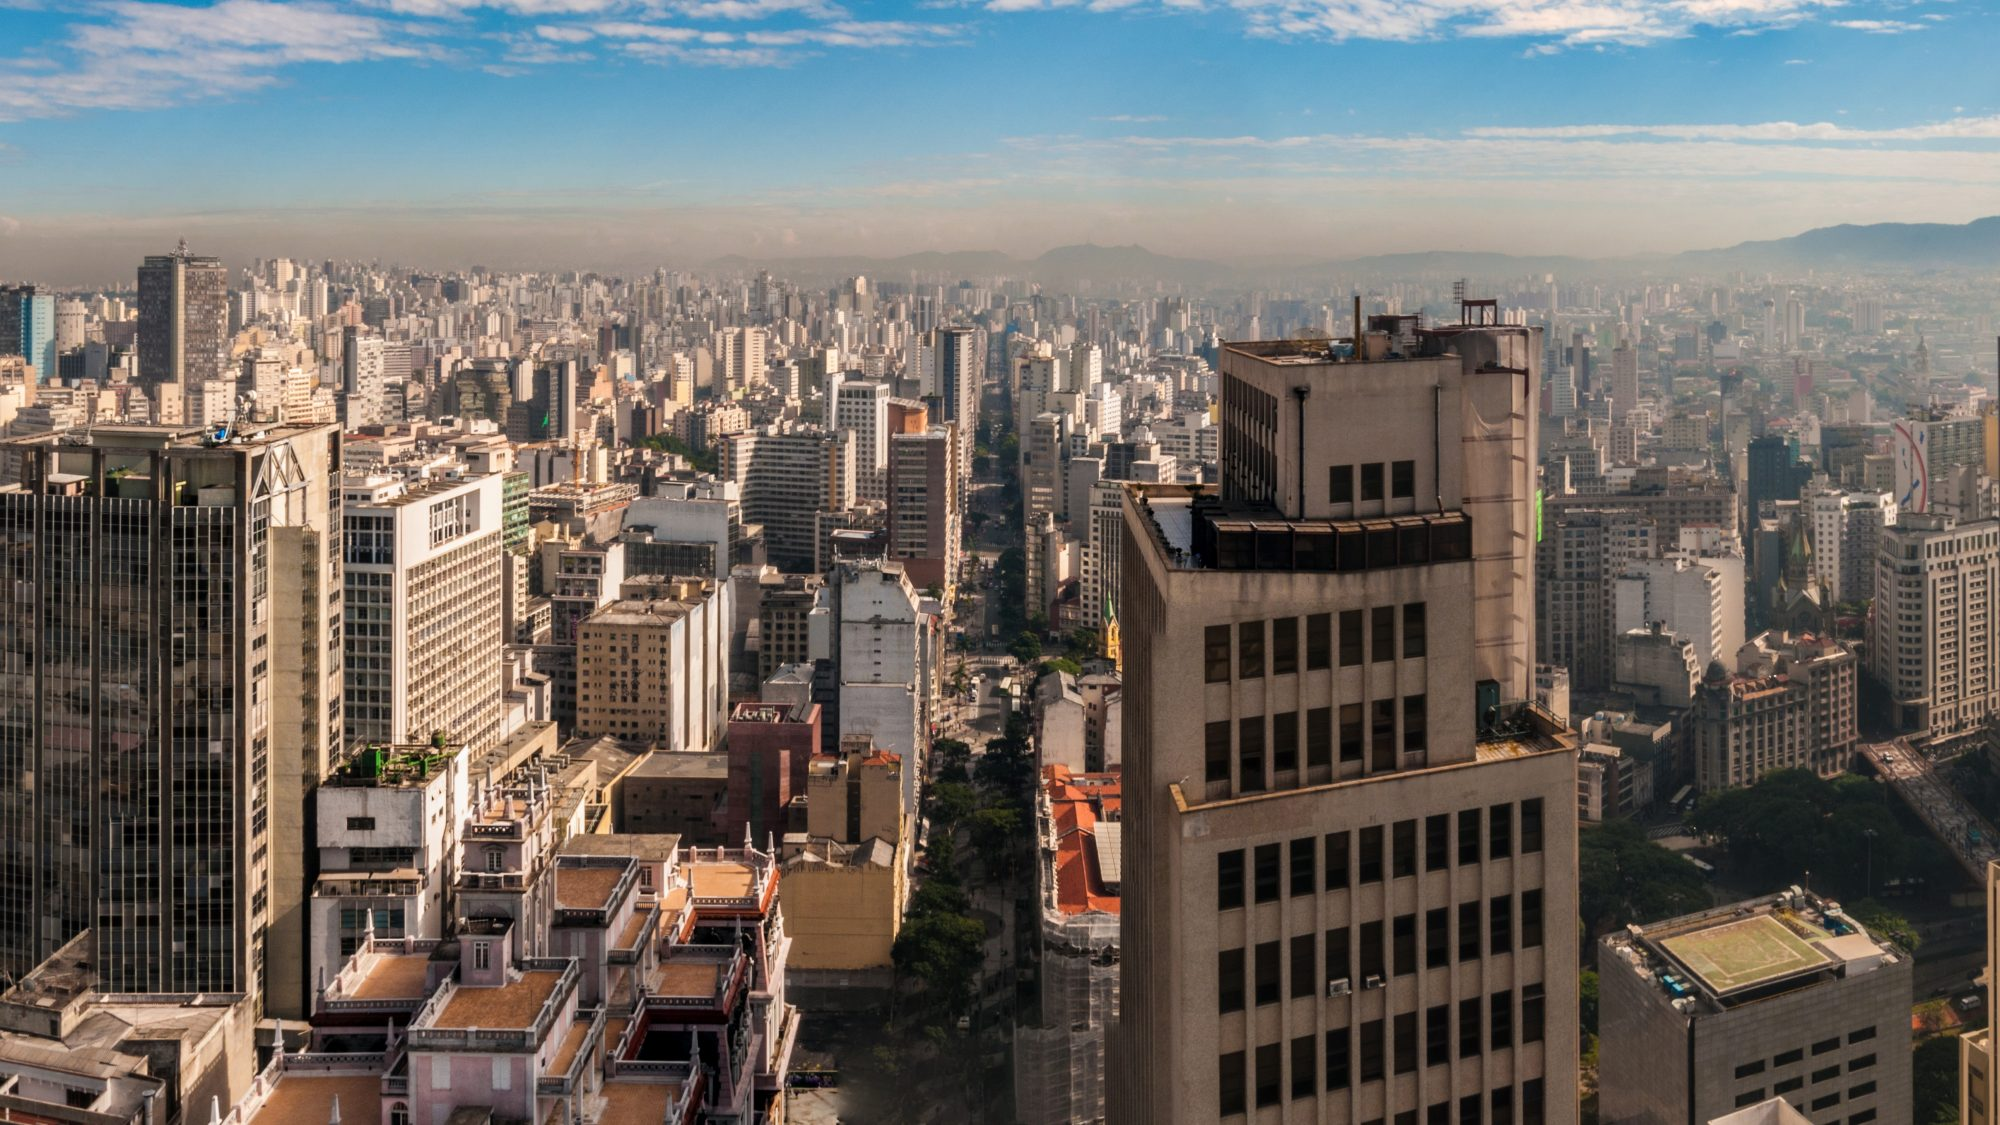 Cities and Future Global Challenges